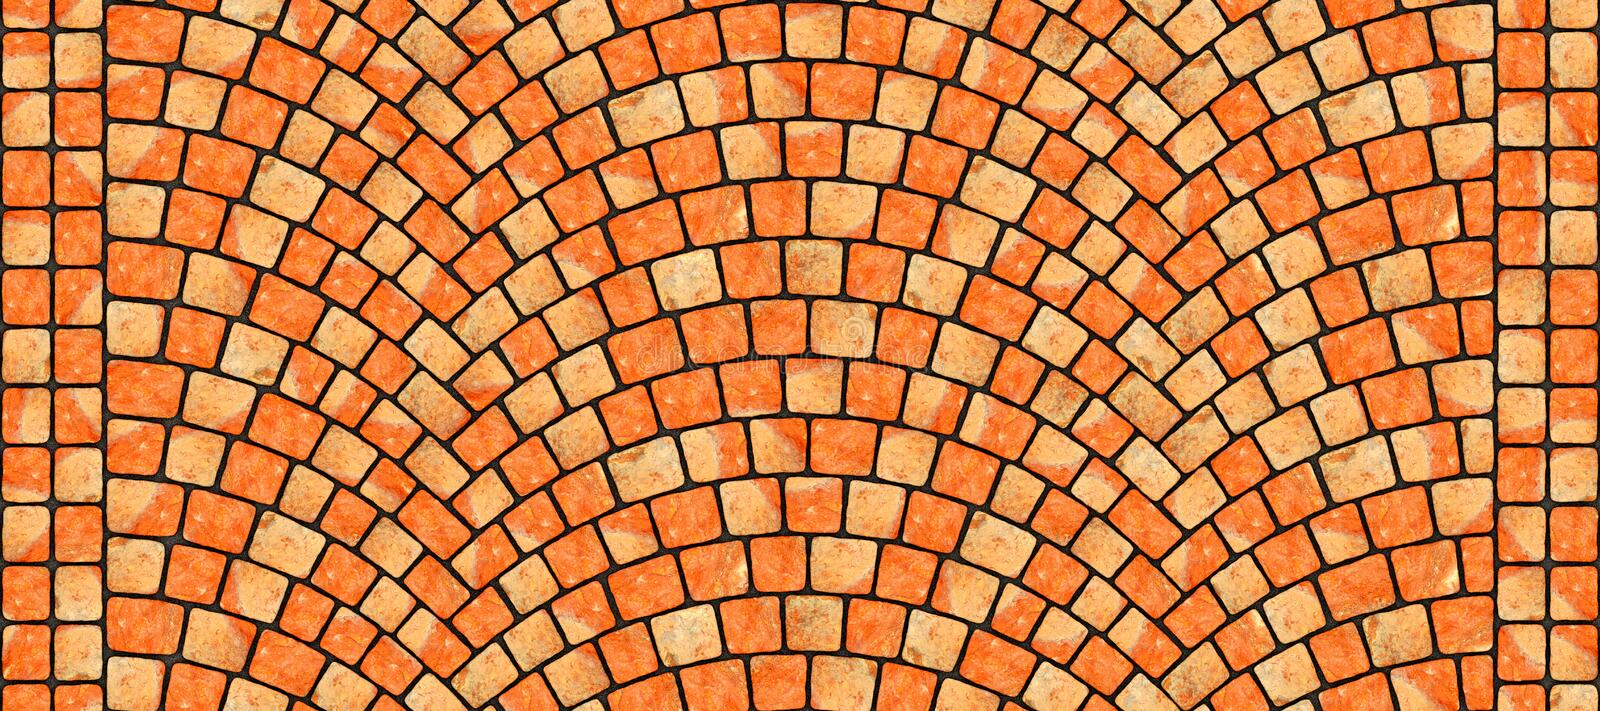 Road curved cobblestone texture 112. Cobblestone arched pavement road with edge courses at the sidewalk. Seamless tileable repeating 3D rendering texture vector illustration